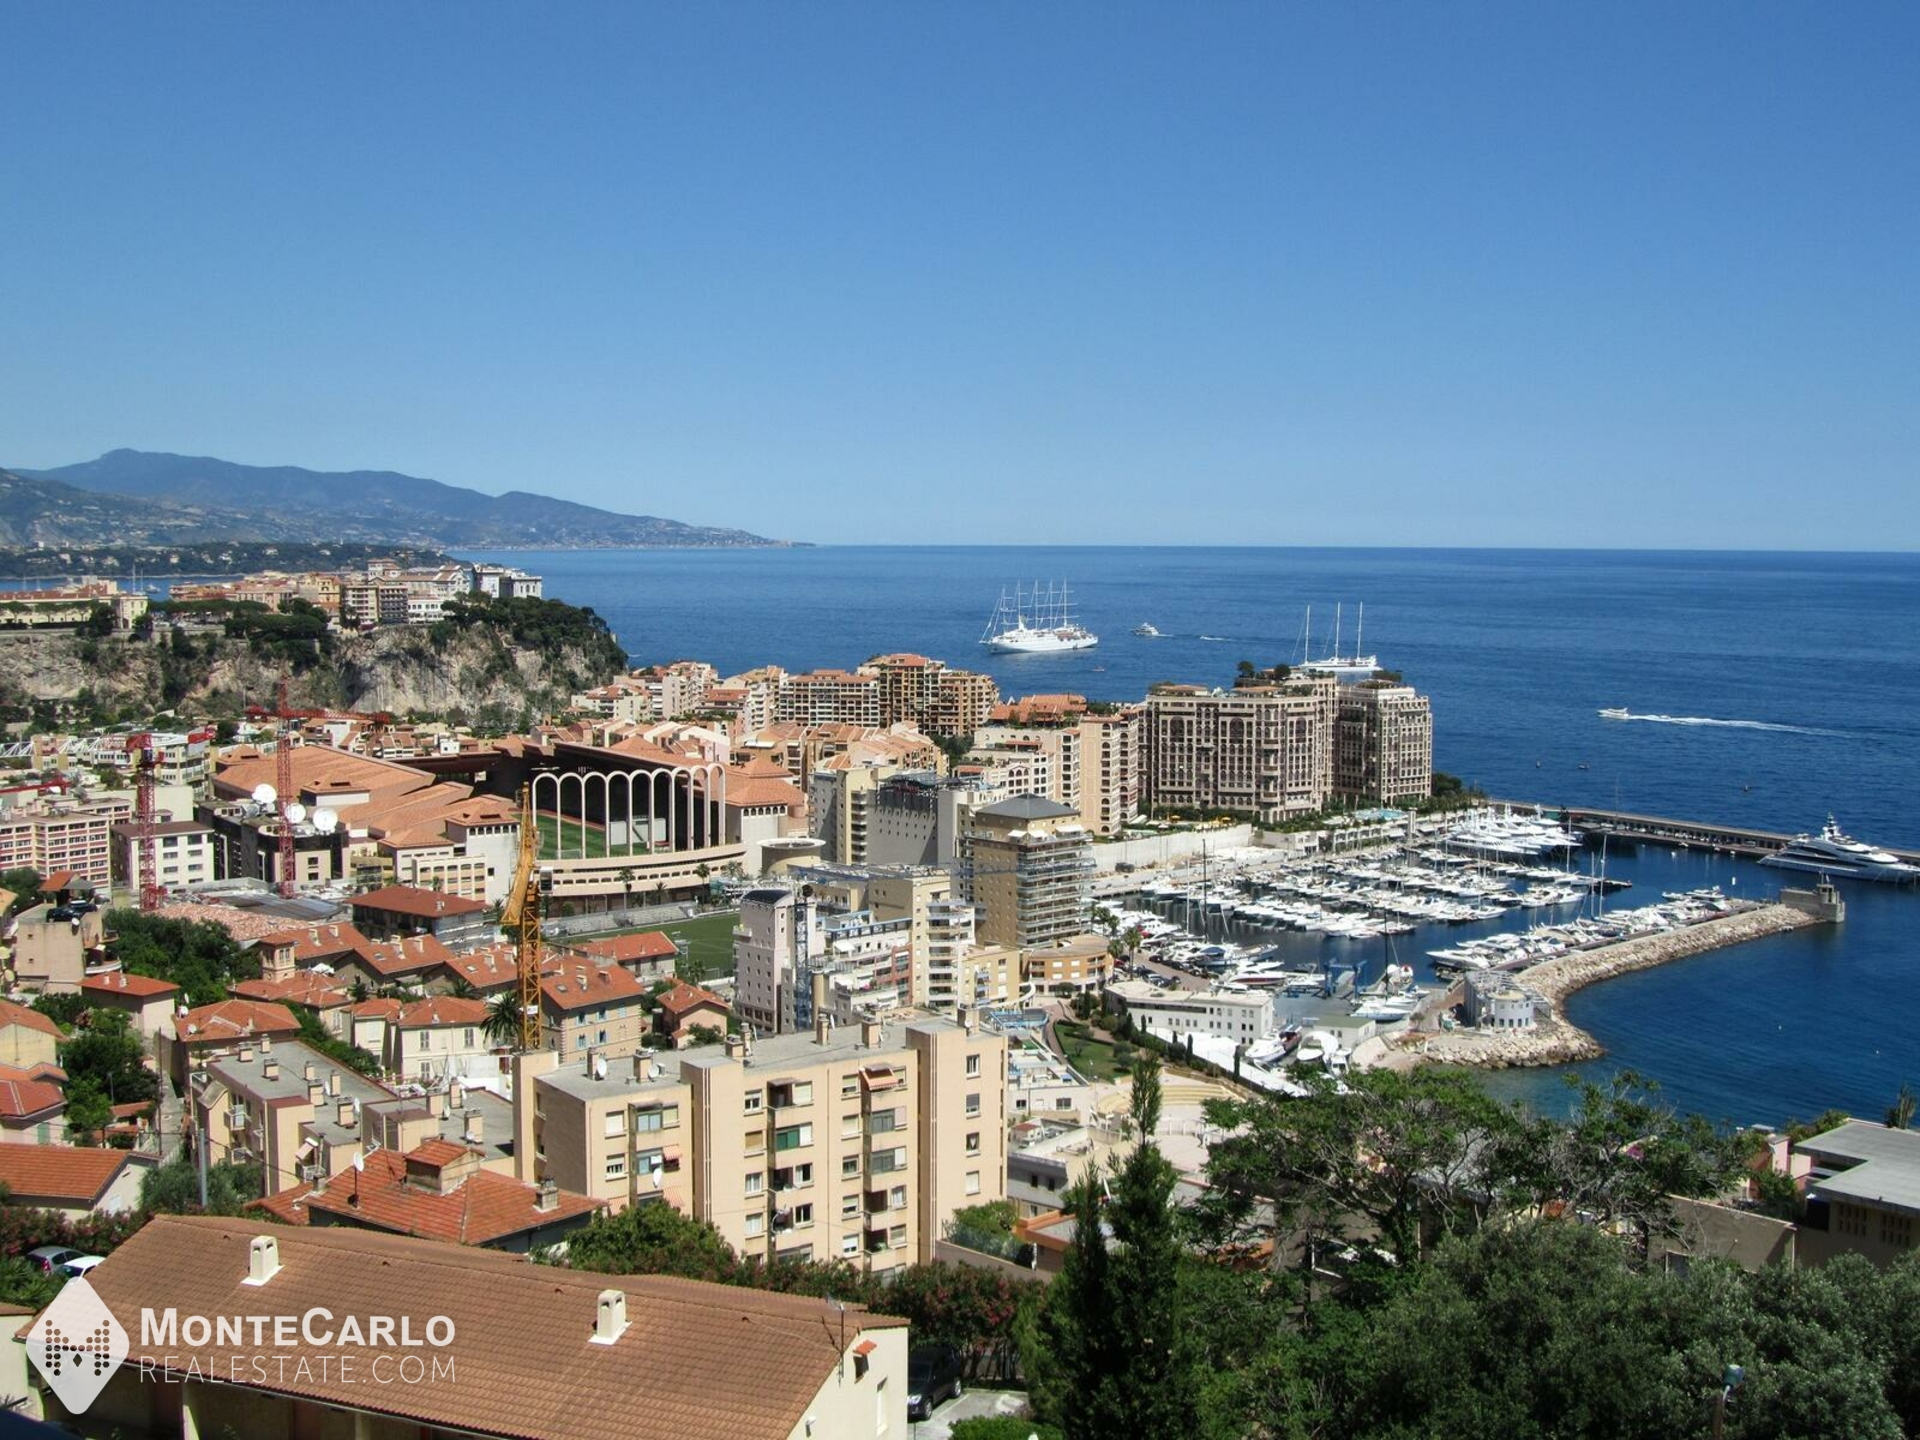 For sale Cap-d'Ail - Apartment / 3 rooms : 795 000 € | Monte-Carlo Real Estate [MIV00847]